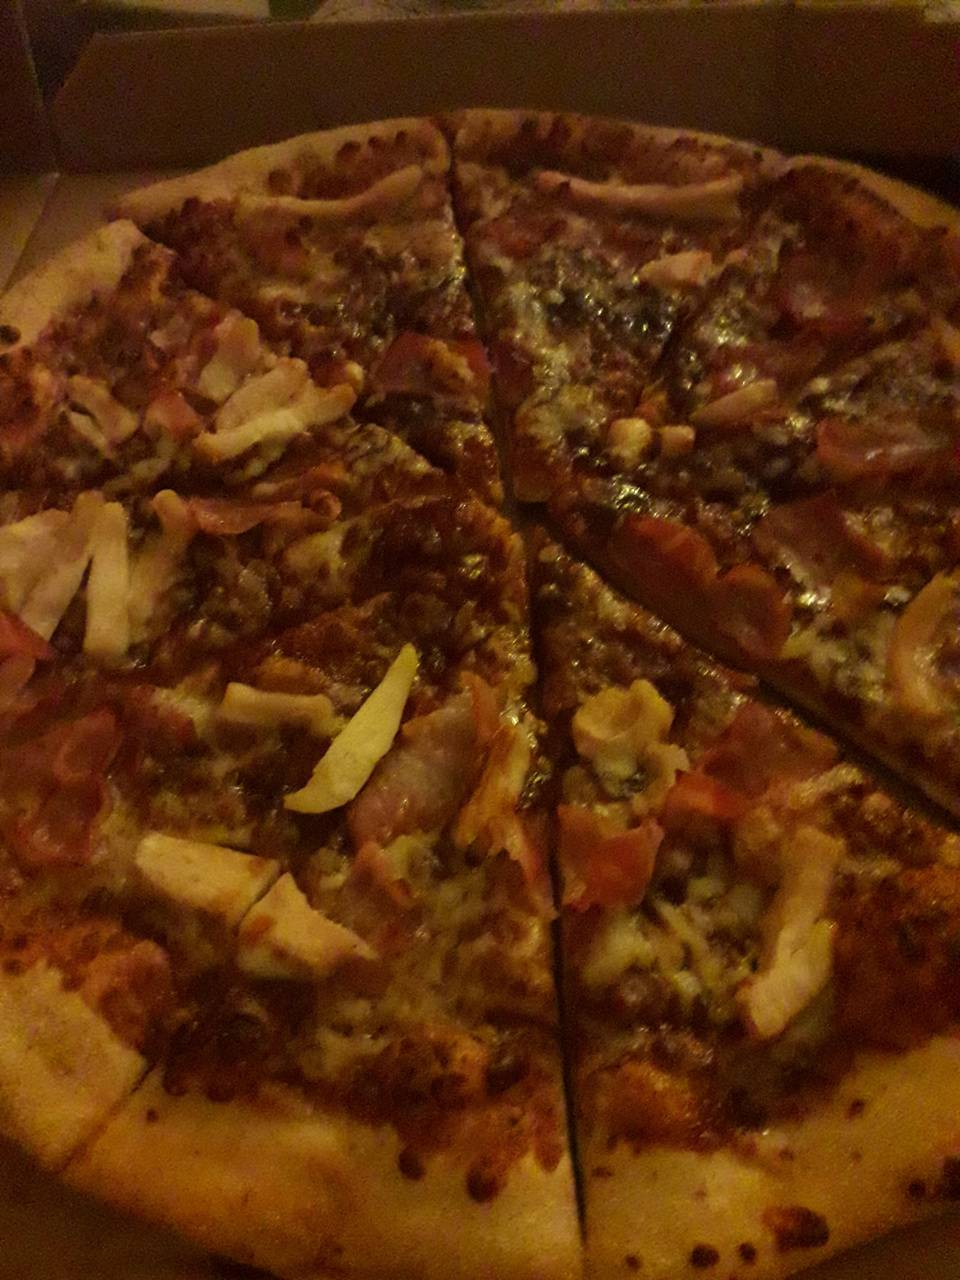 The Meatfeast Pizza